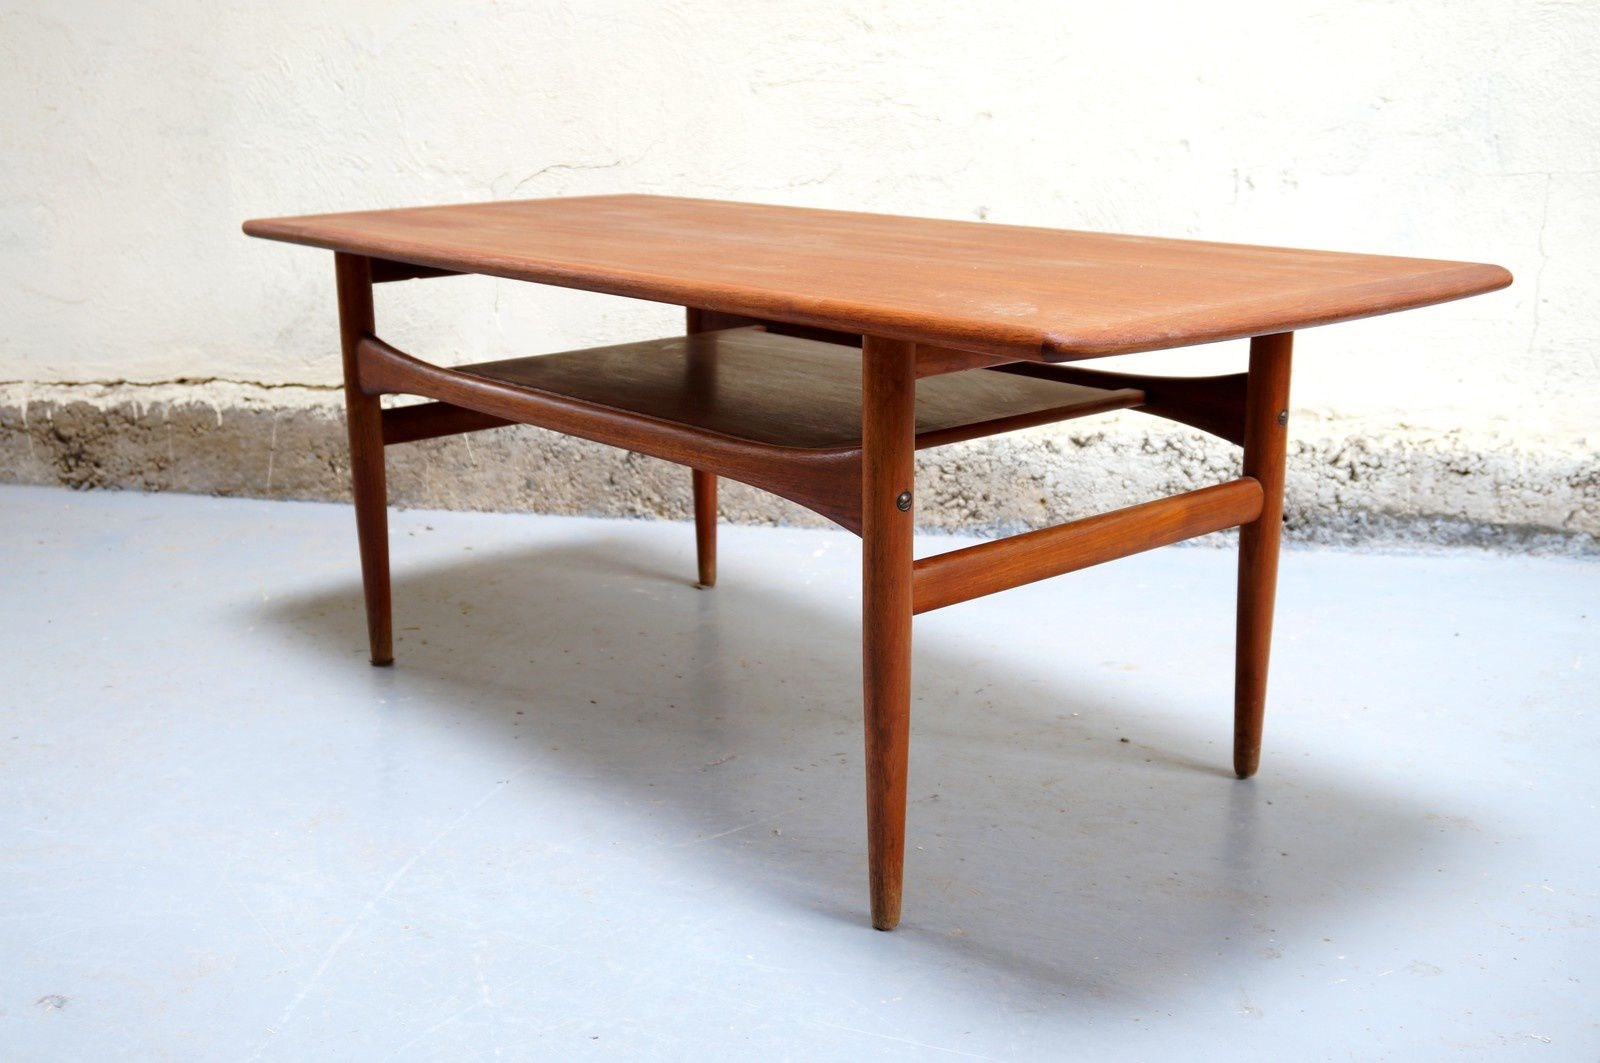 Table basse scandinave arrebo mobler danois vintage danish for Table basse gigogne style scandinave